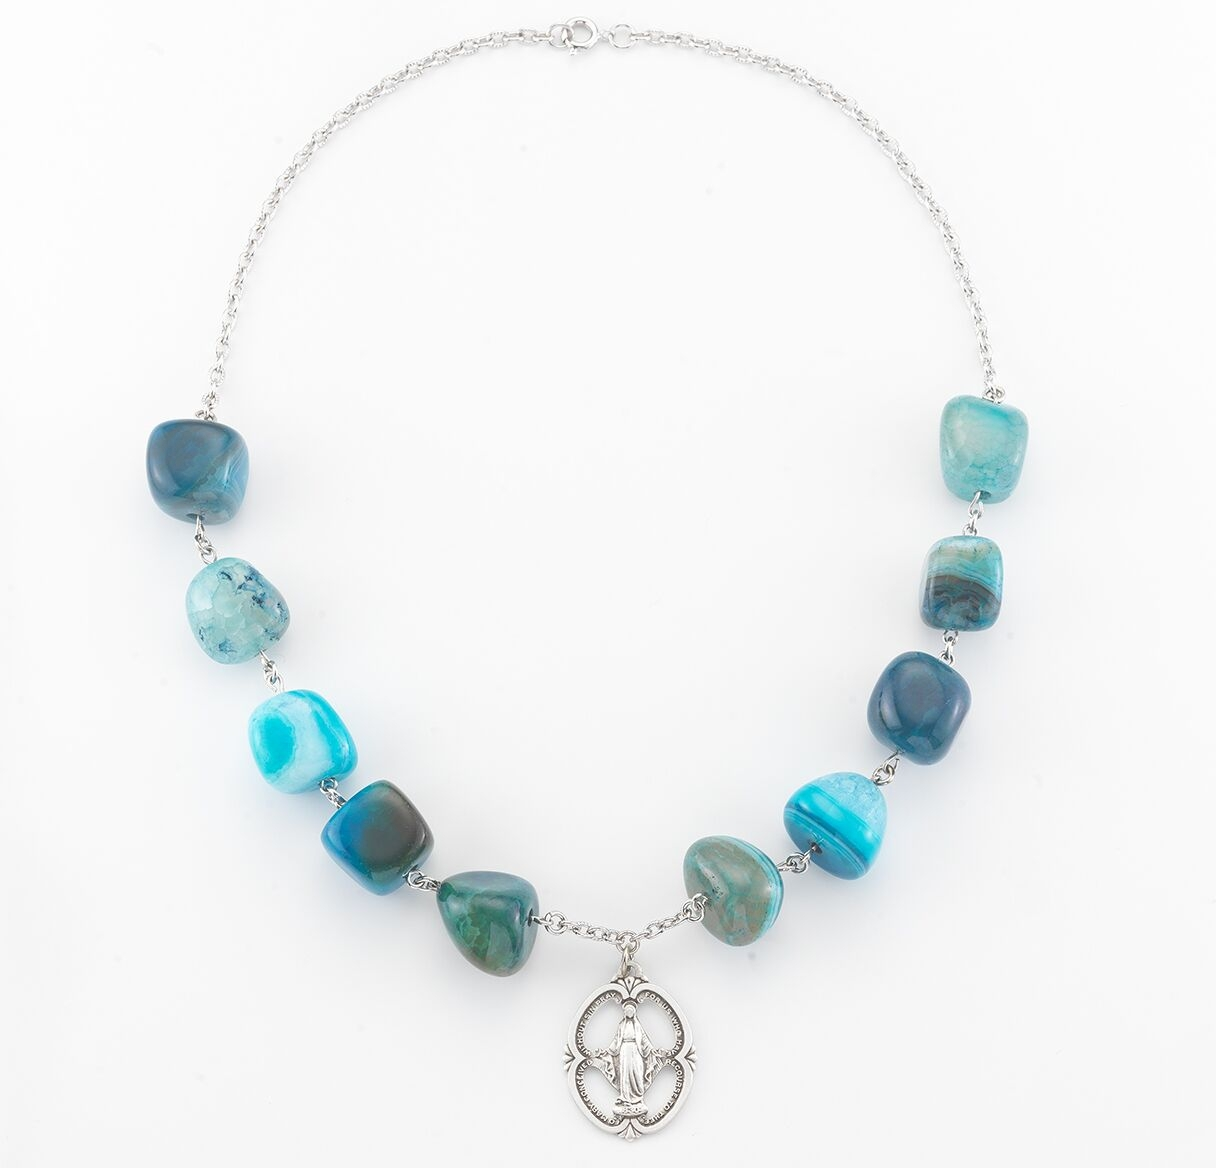 HMH Religous Blue Agate Gemstone Miraculous Necklace